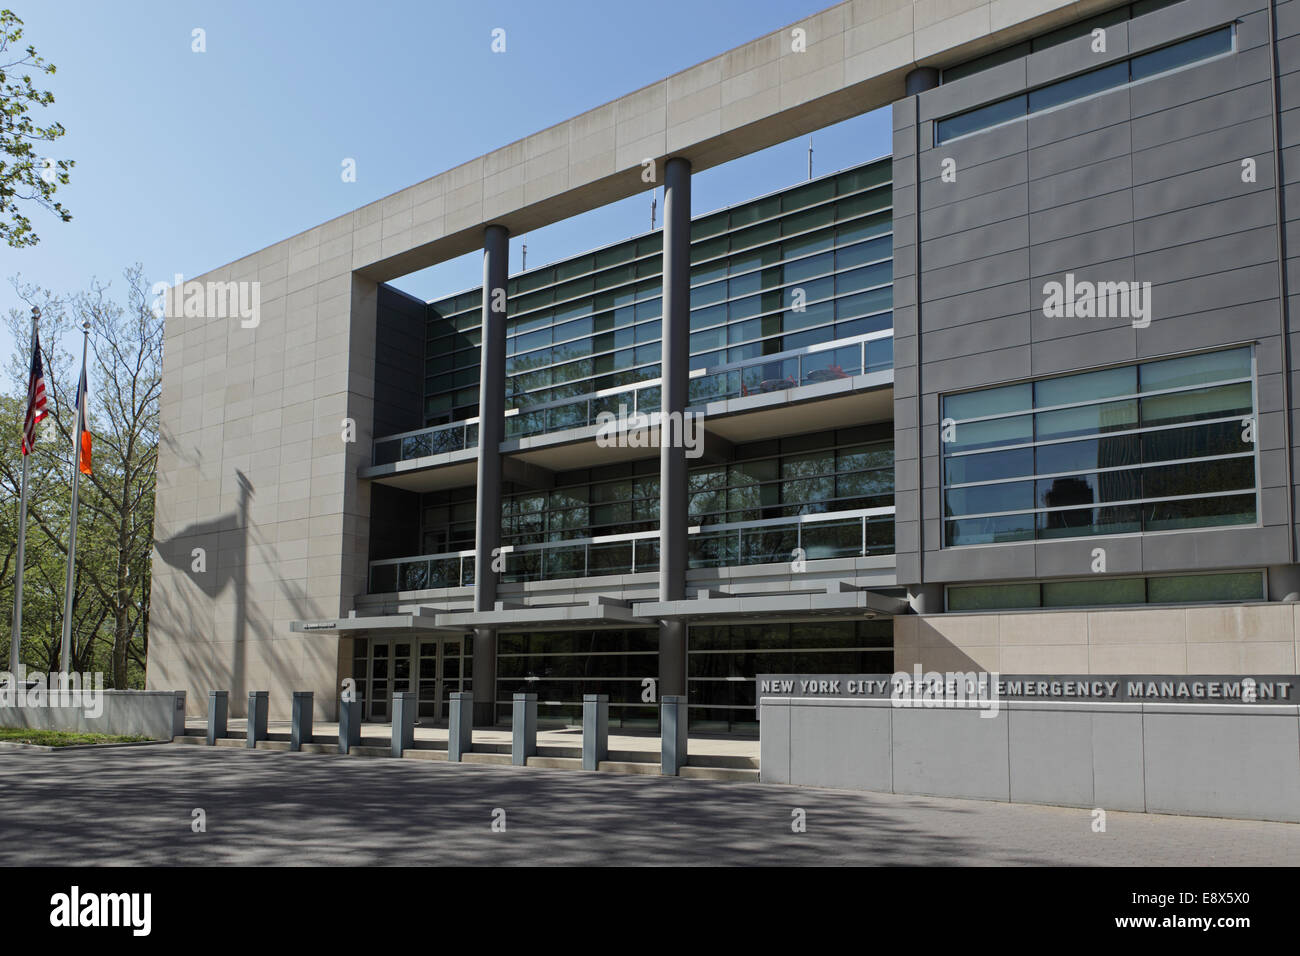 Mayor's Office of Emergency Management building in Brooklyn Heights, New York City - Stock Image